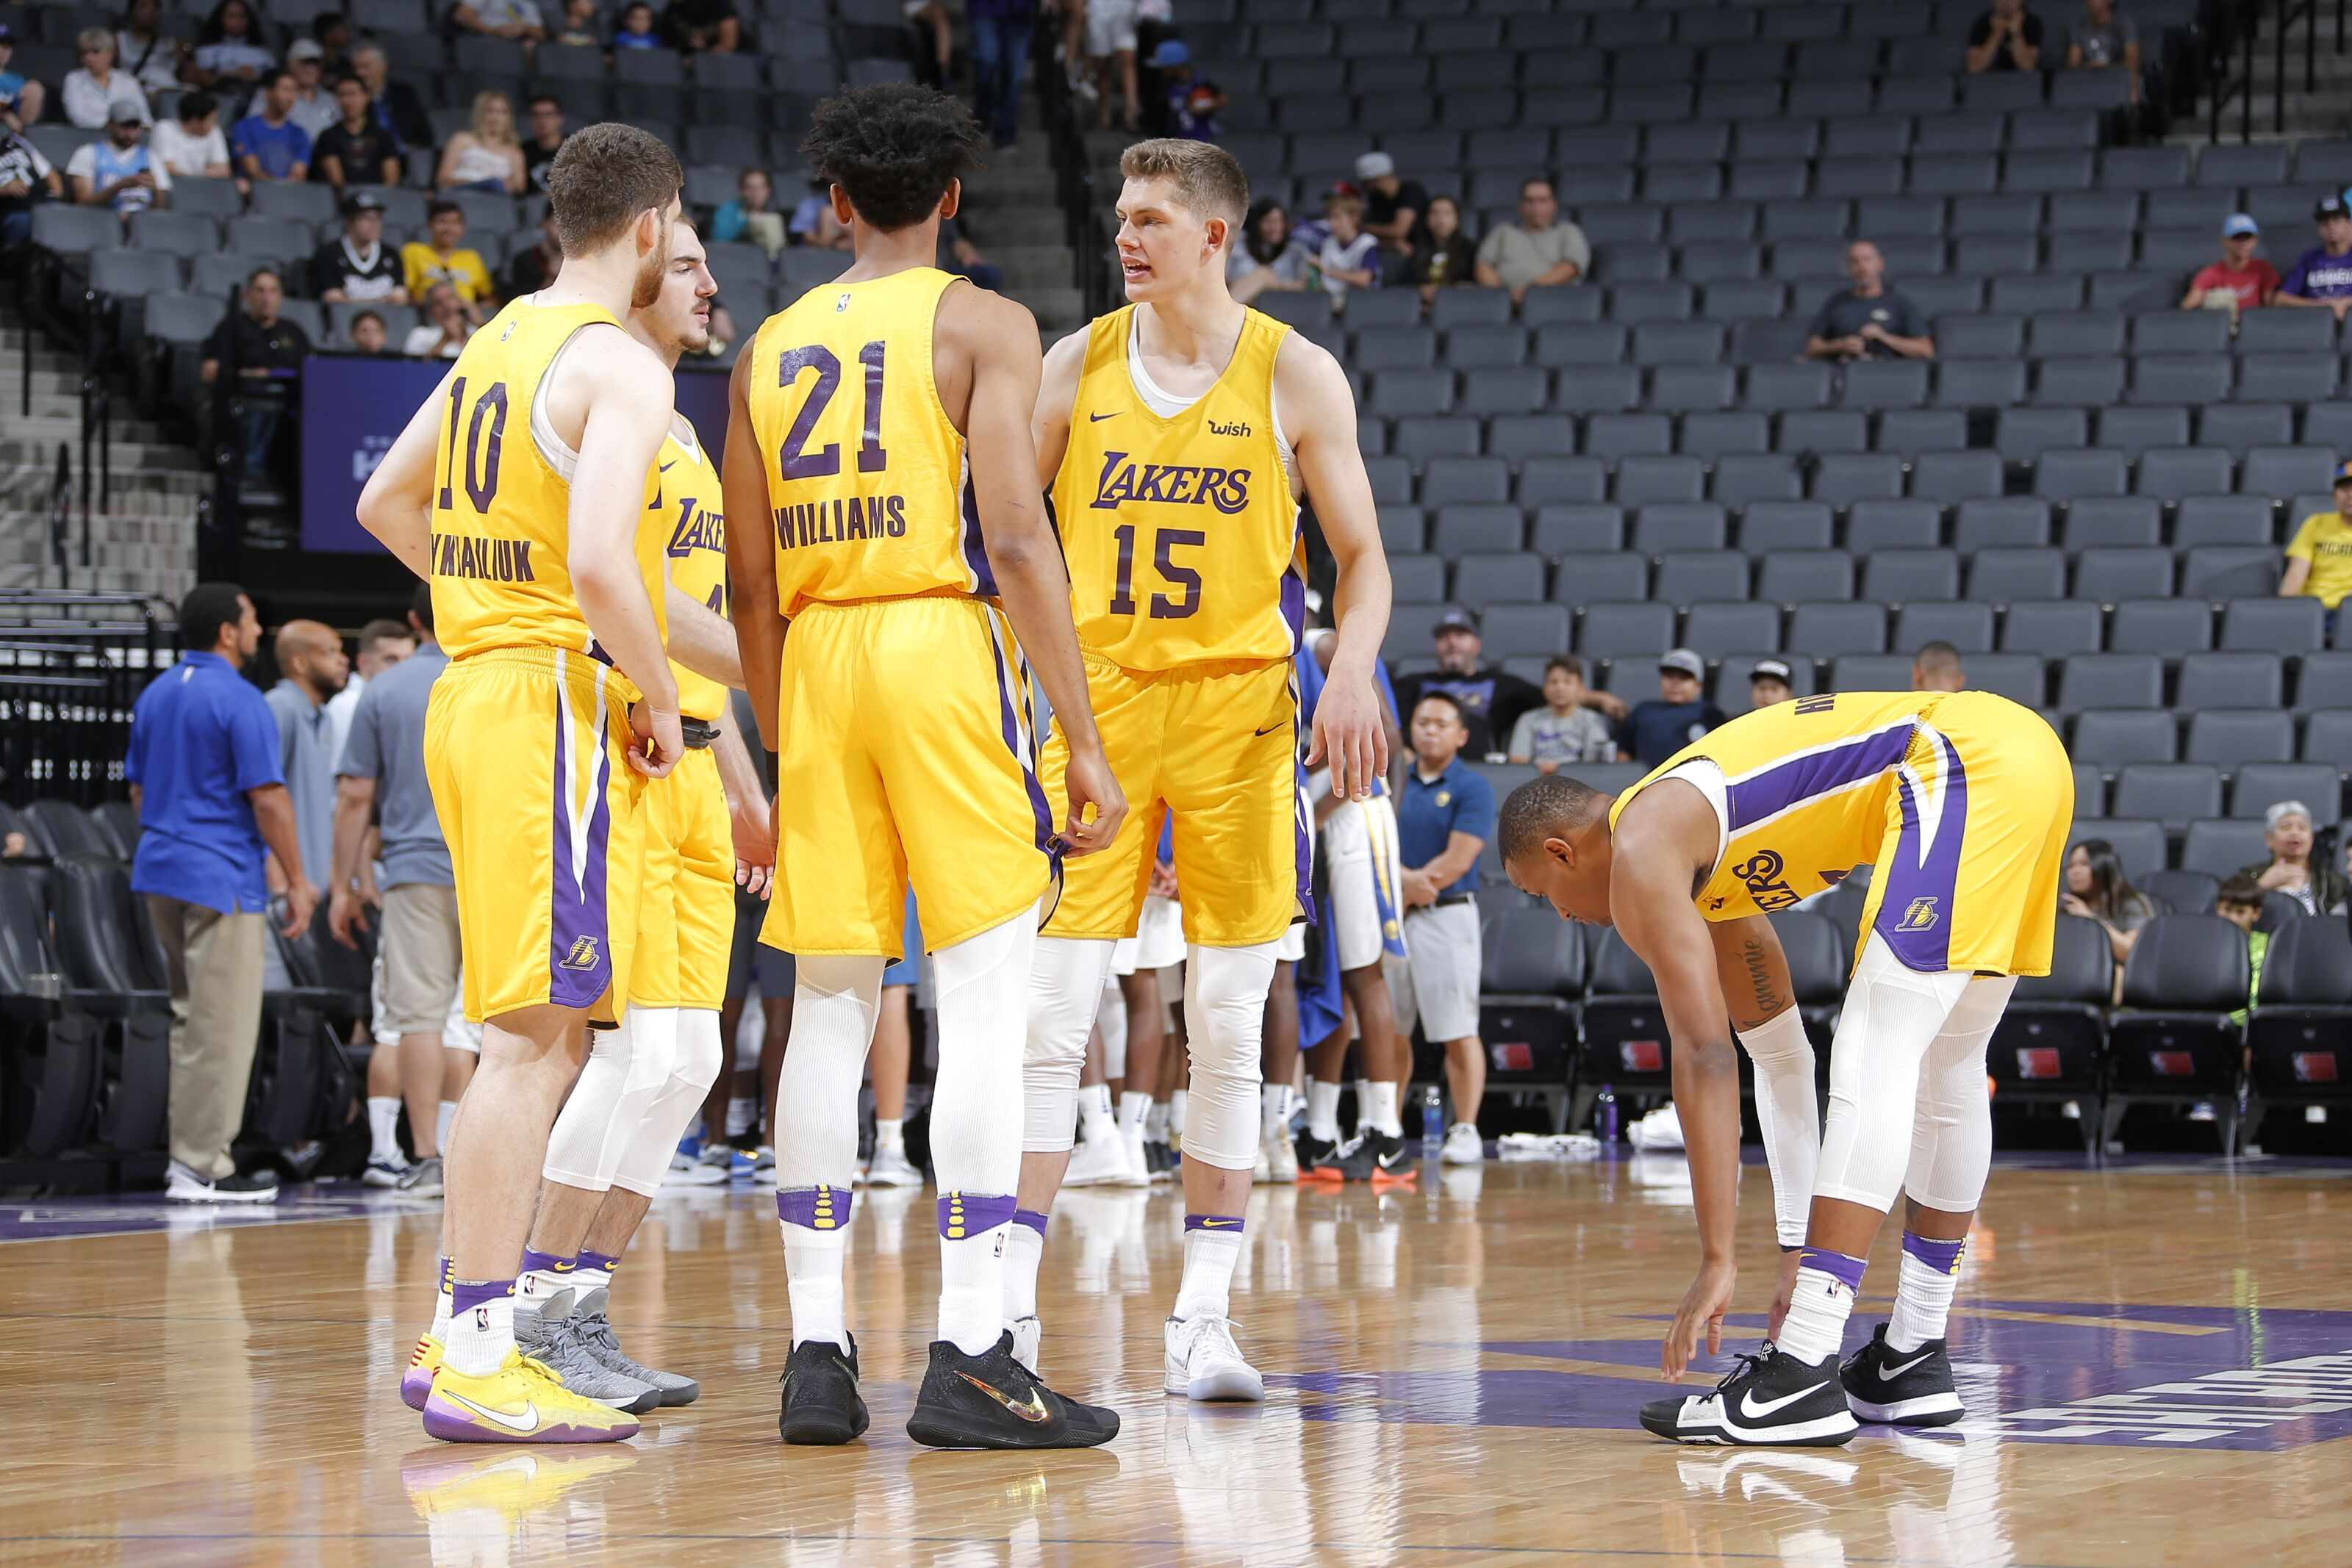 056c439d208e Los Angeles Lakers to participate in second annual California Classic